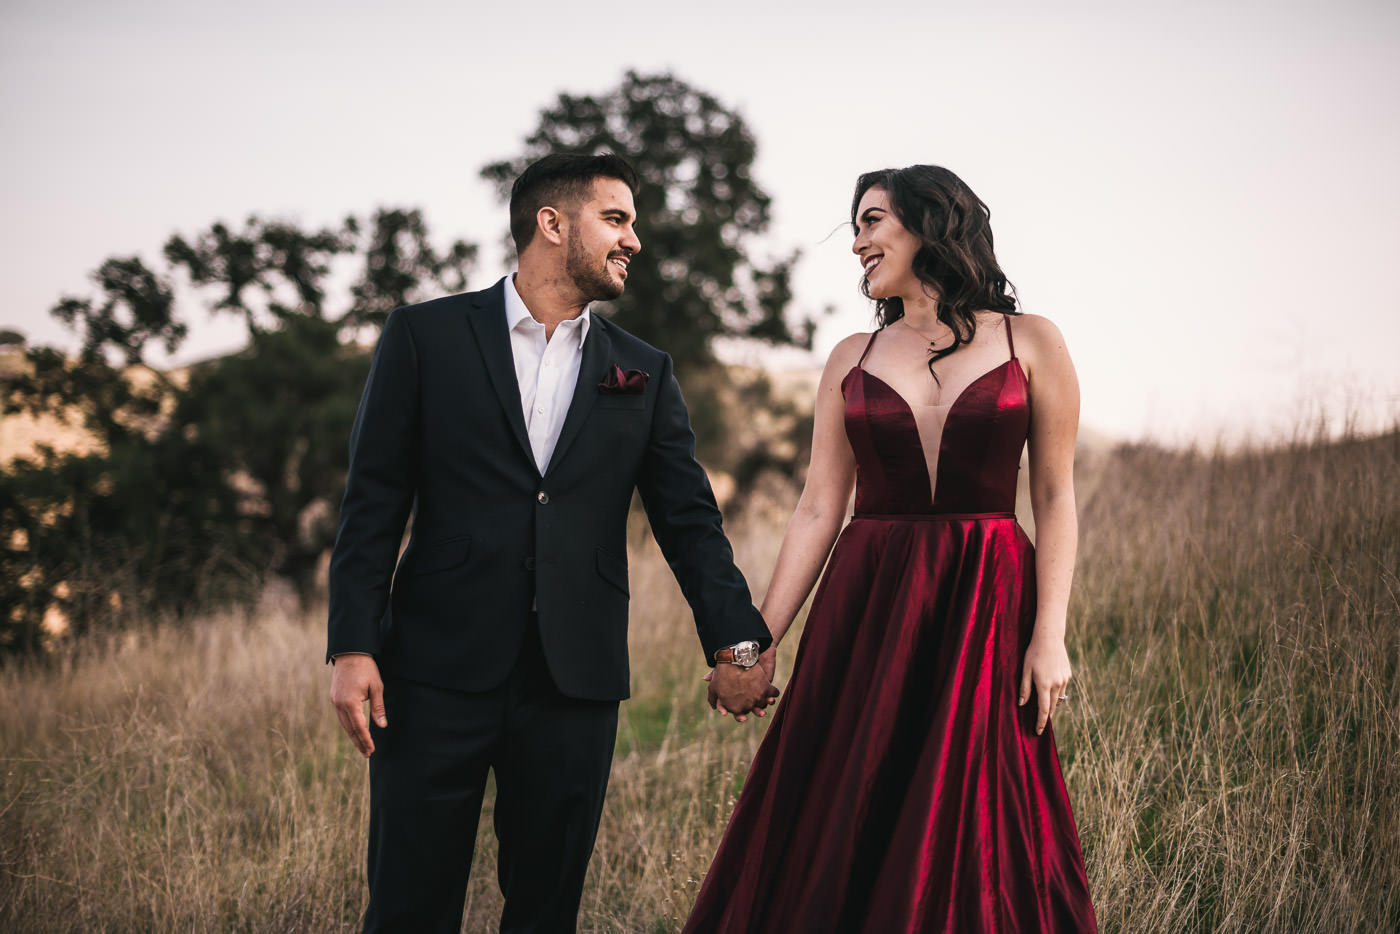 Stunning engagement photography by Malibu Photographer.